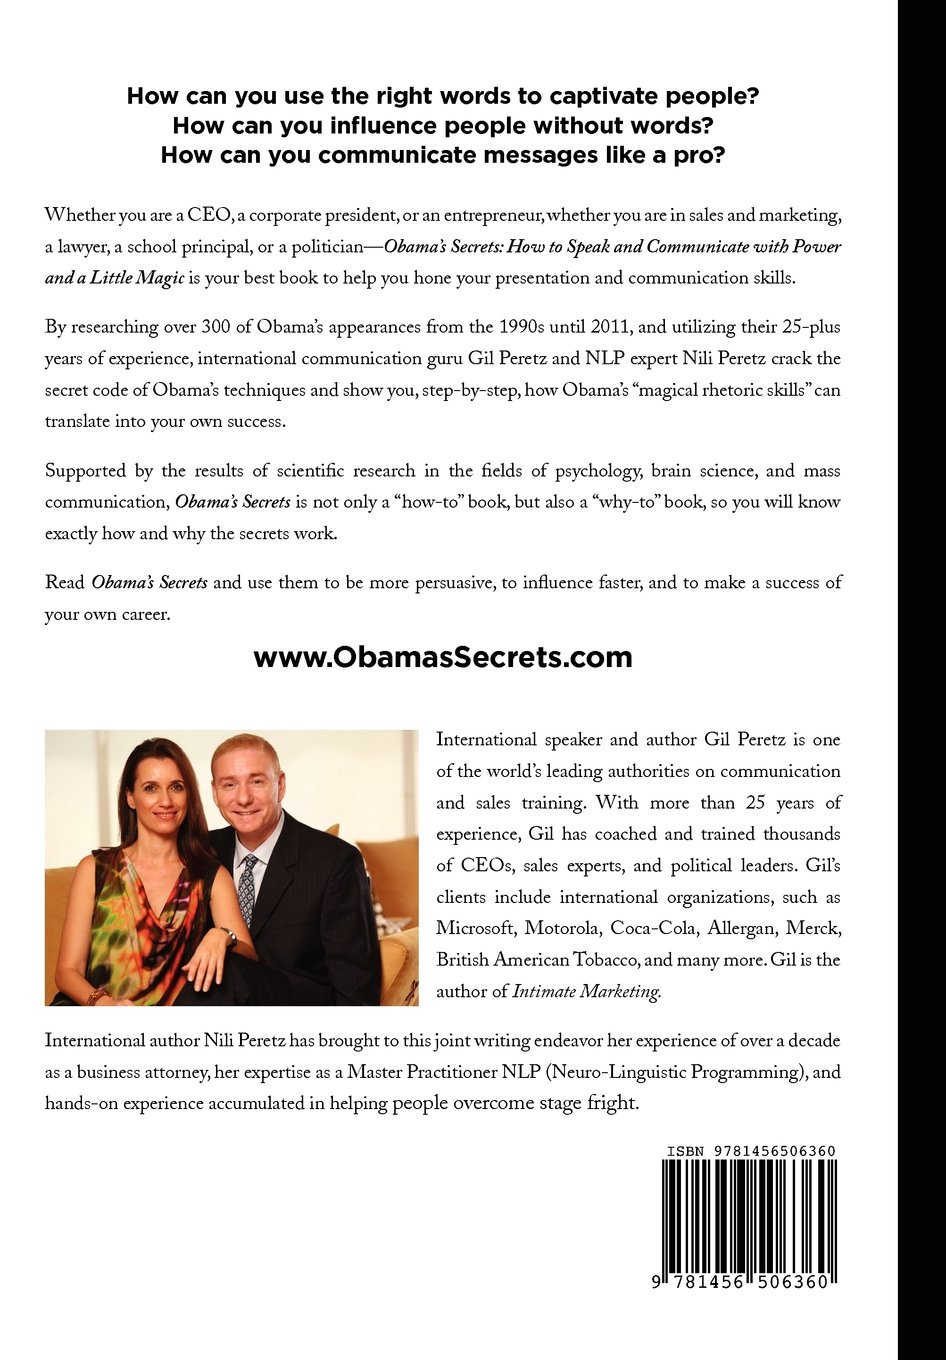 Obama's Secrets: How to Speak and Communicate with Power and